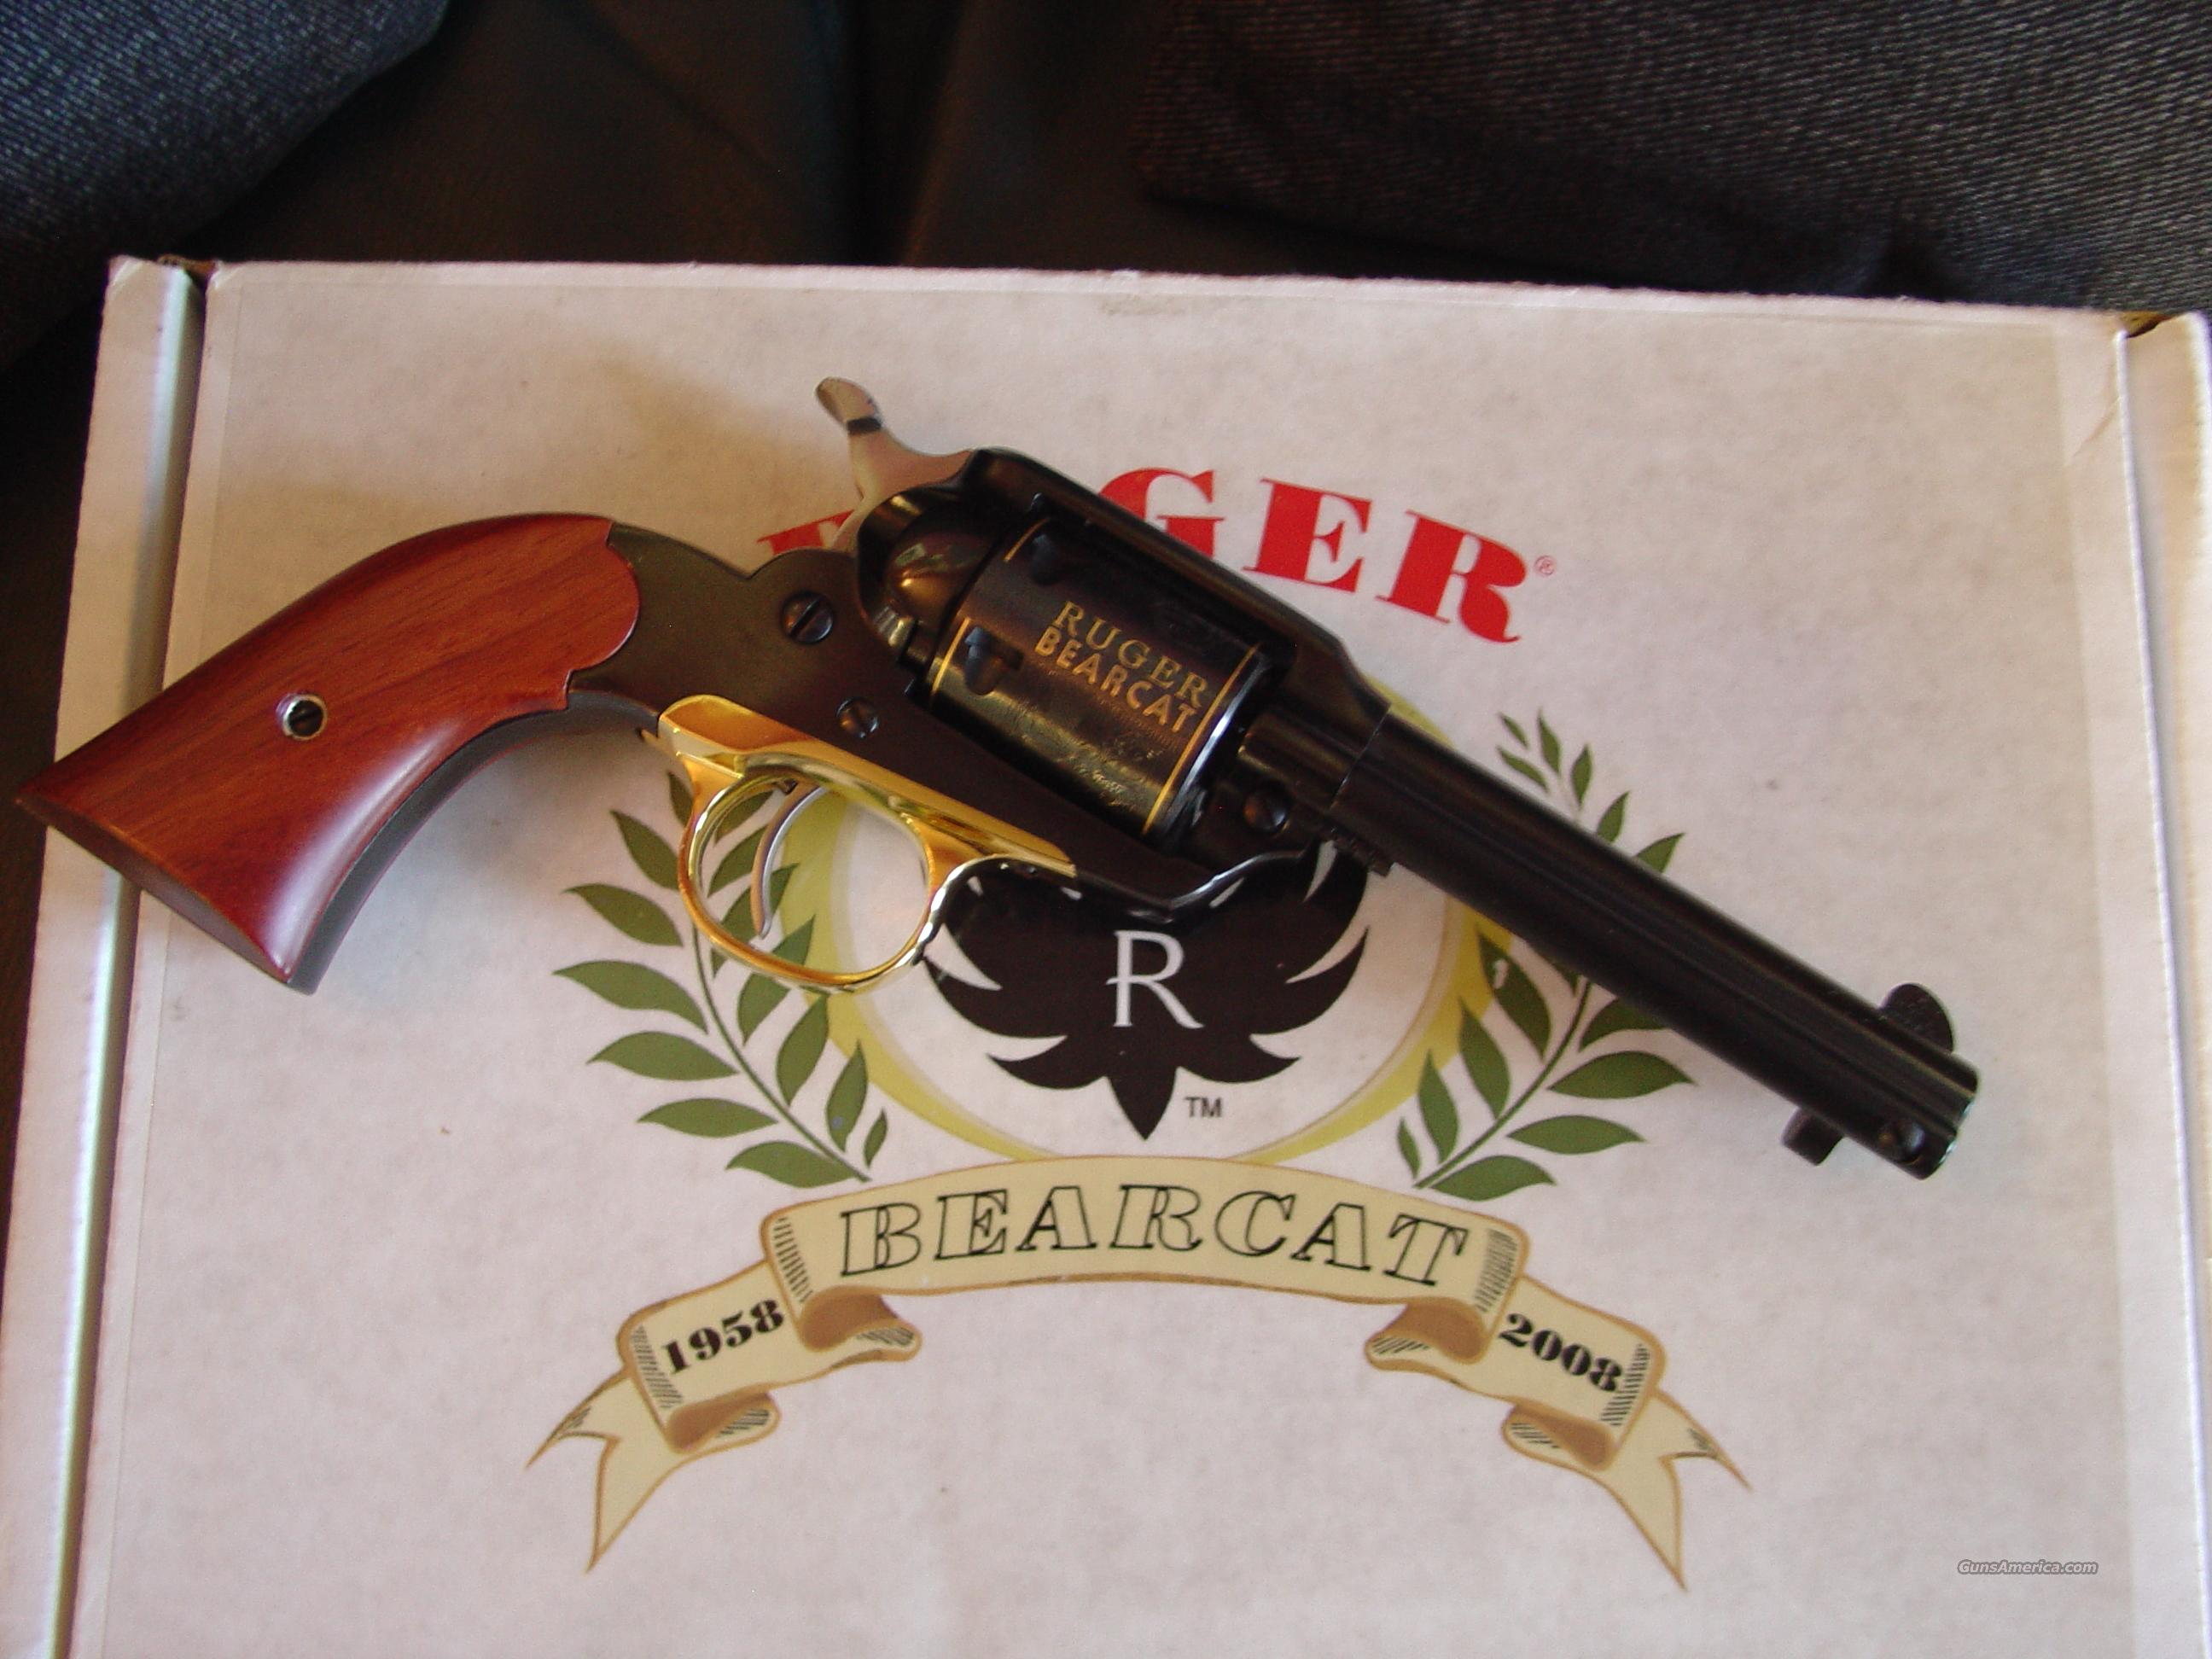 Ruger Bearcat 22LR,50th Anniversary Commemorative,engraved cylinder,gold  plating,presentation case,Ruger pouch,& every paper & box-rare model-1958  to